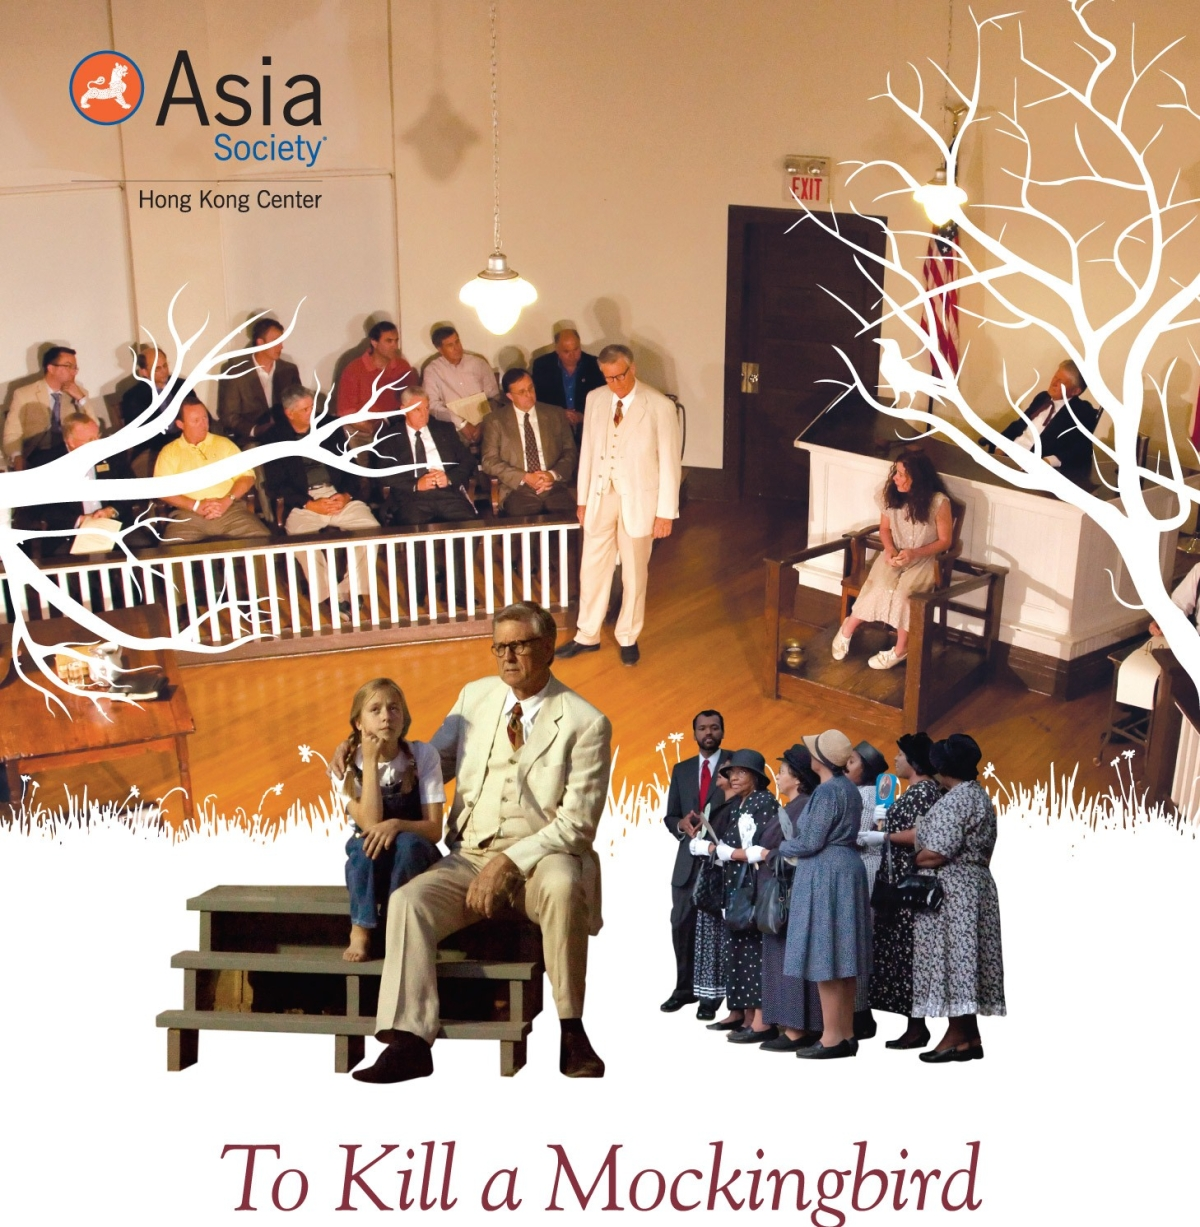 missionary society in to kill a mockingbird Harper lee explores the theme of identity in the novel 'to kill a mockingbird,'  to  be a lady if i wore breeches' when scout listened to the missionary society.